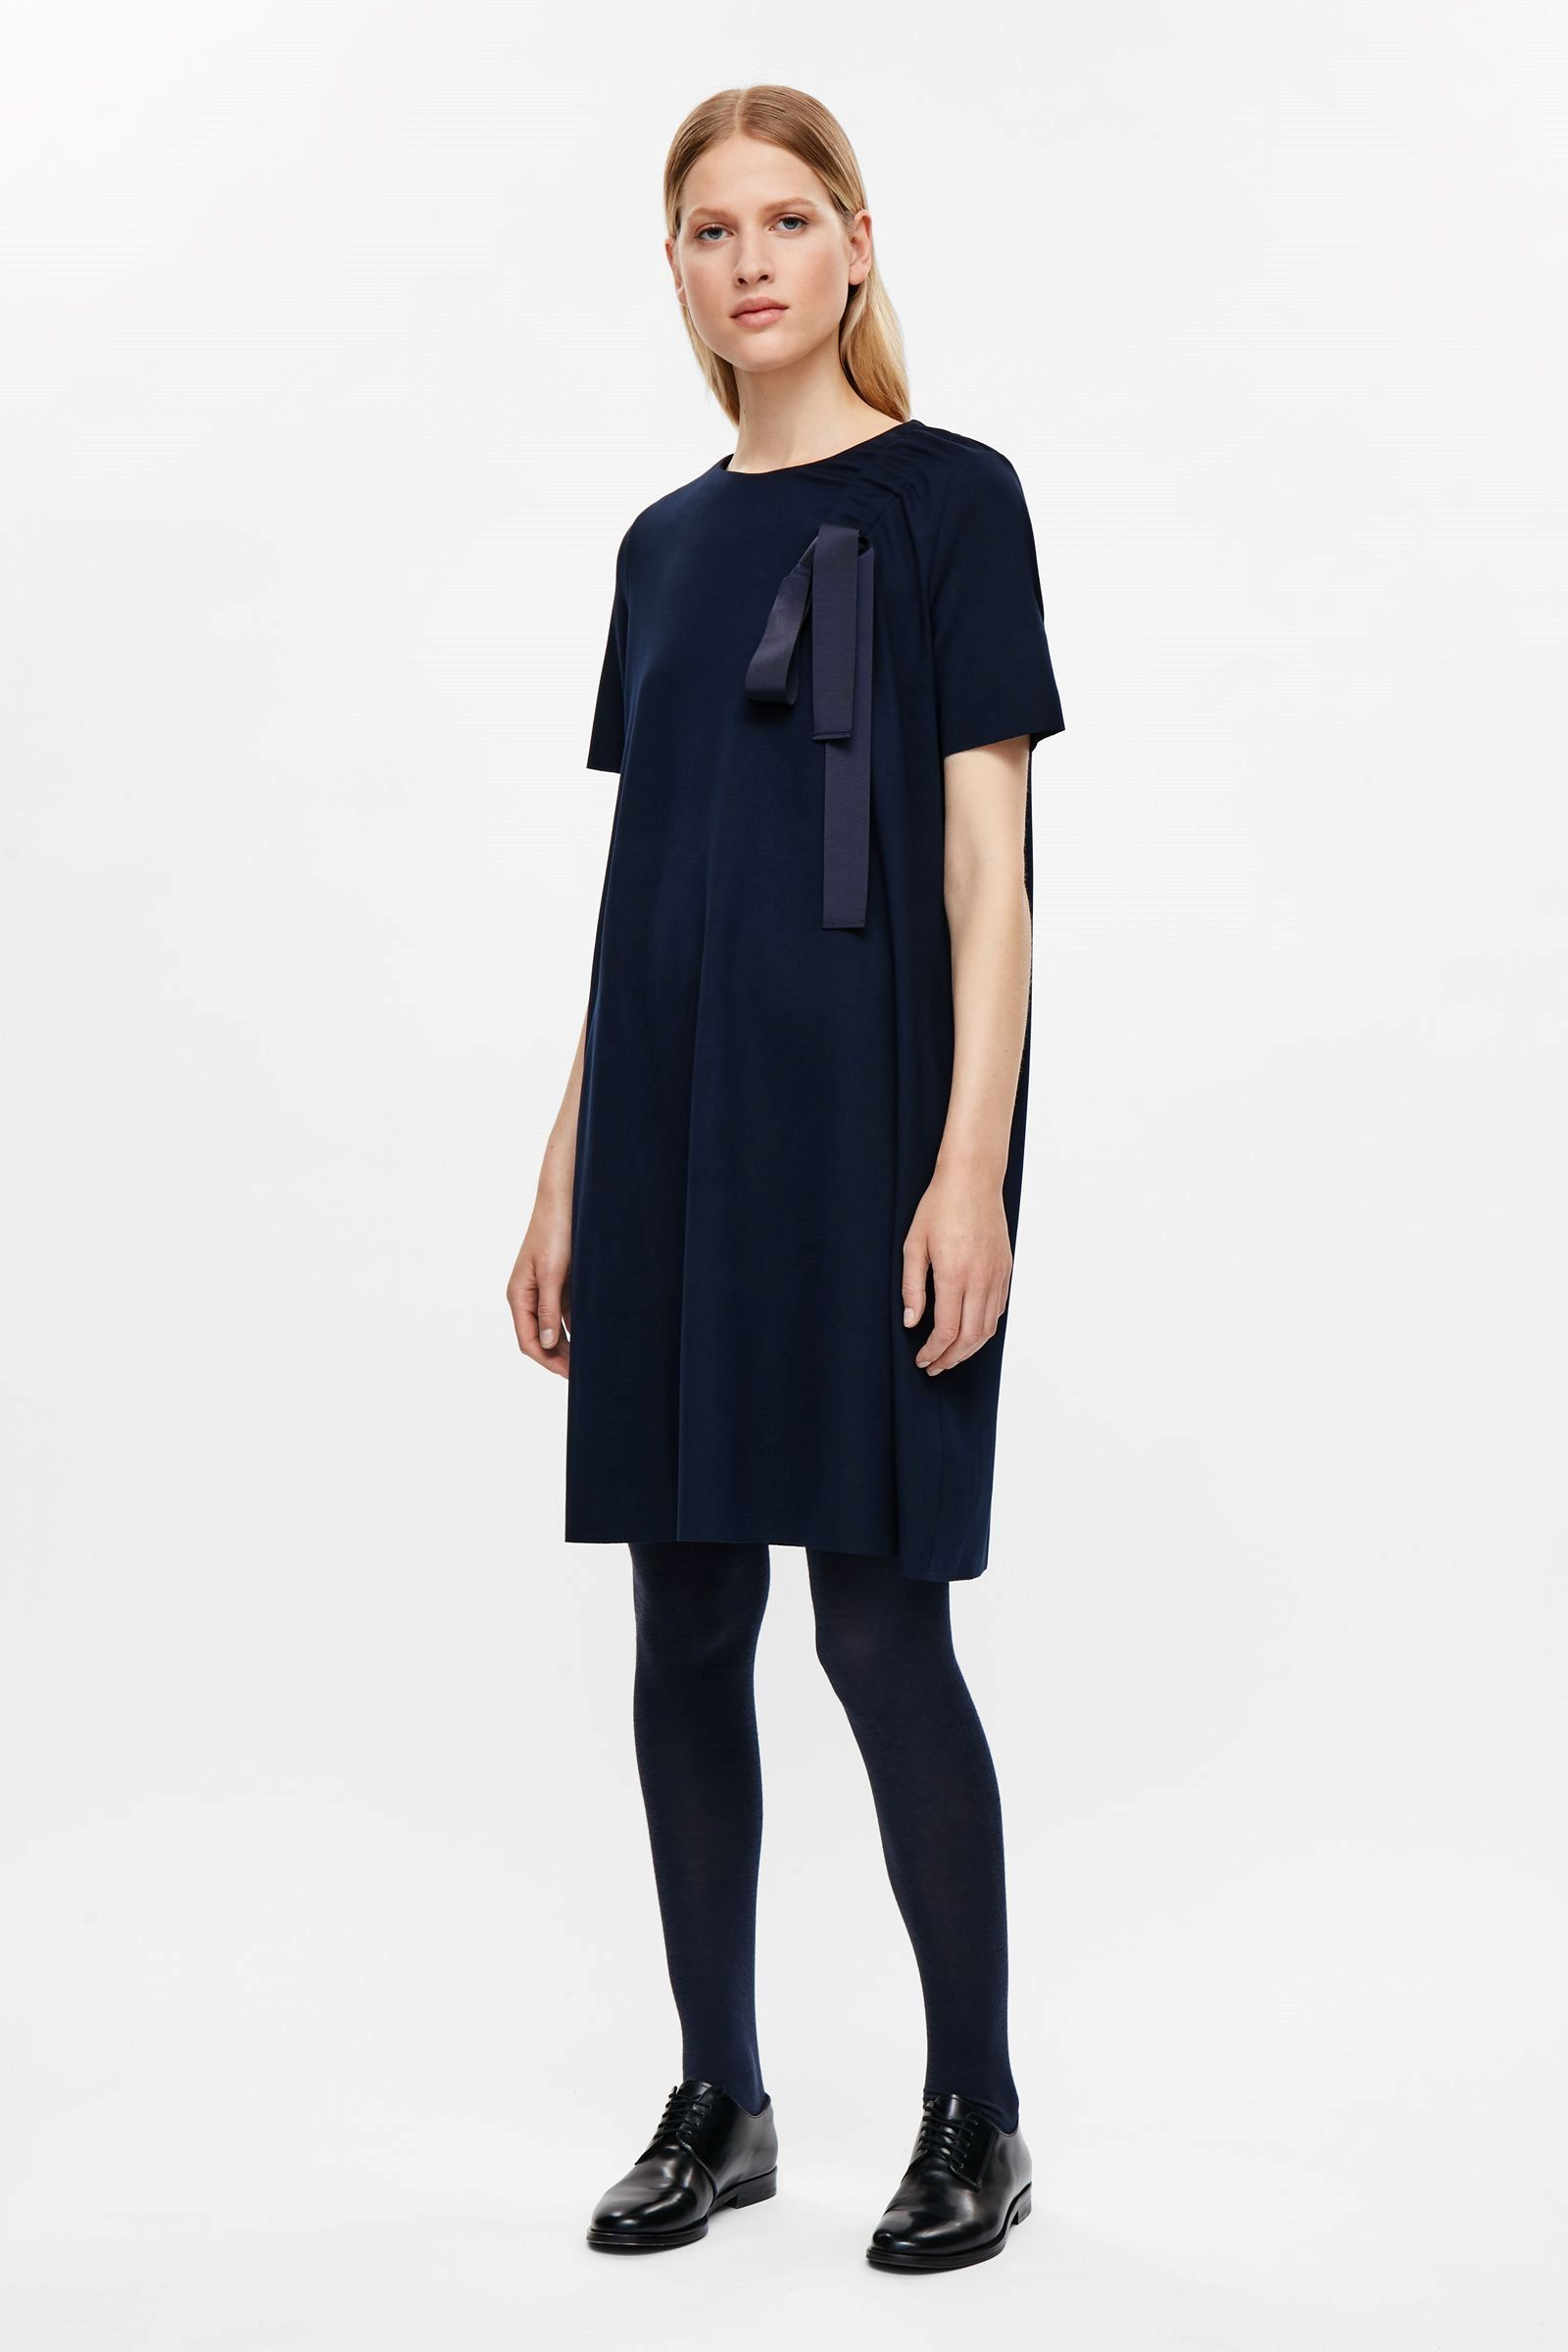 COS image 1 of Dress with drawstring detail in Navy | clothes ...